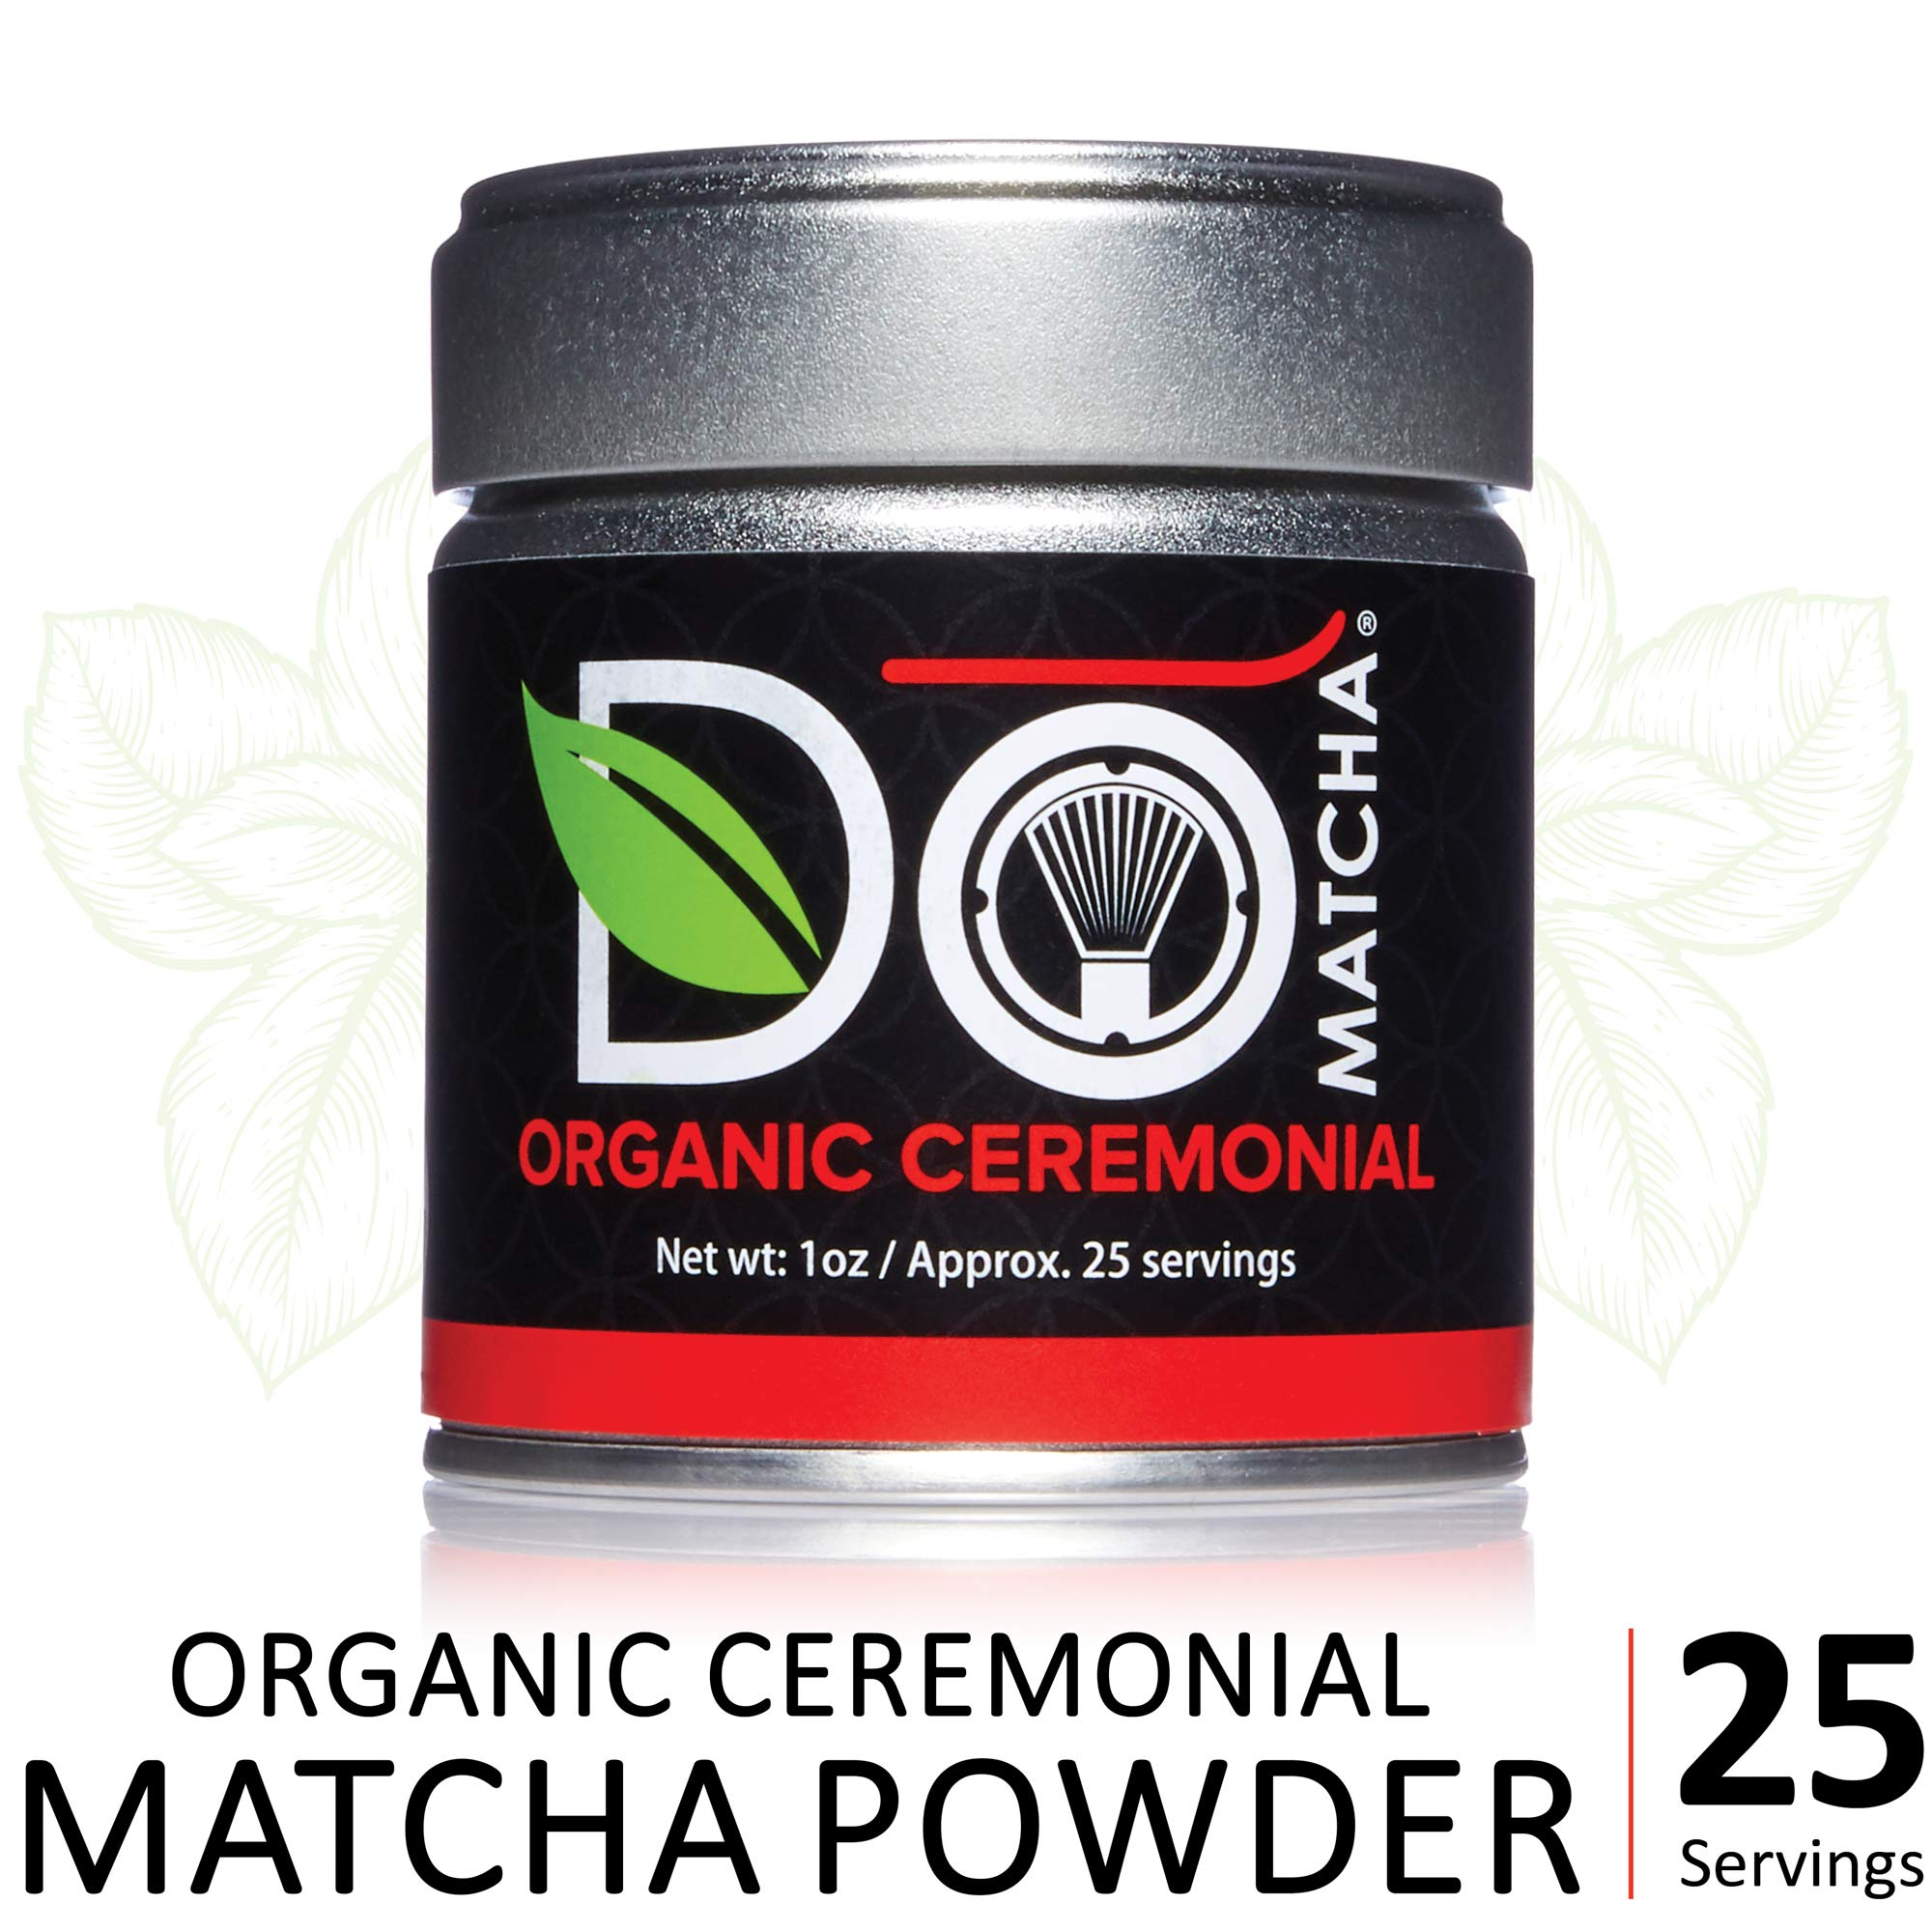 DoMatcha - Organic Ceremonial Green Tea Matcha Powder, Natural Source of Antioxidants, Caffeine, and L-Theanine, Promotes Focus and Relaxation, 25 Servings (1 oz) by DoMatcha